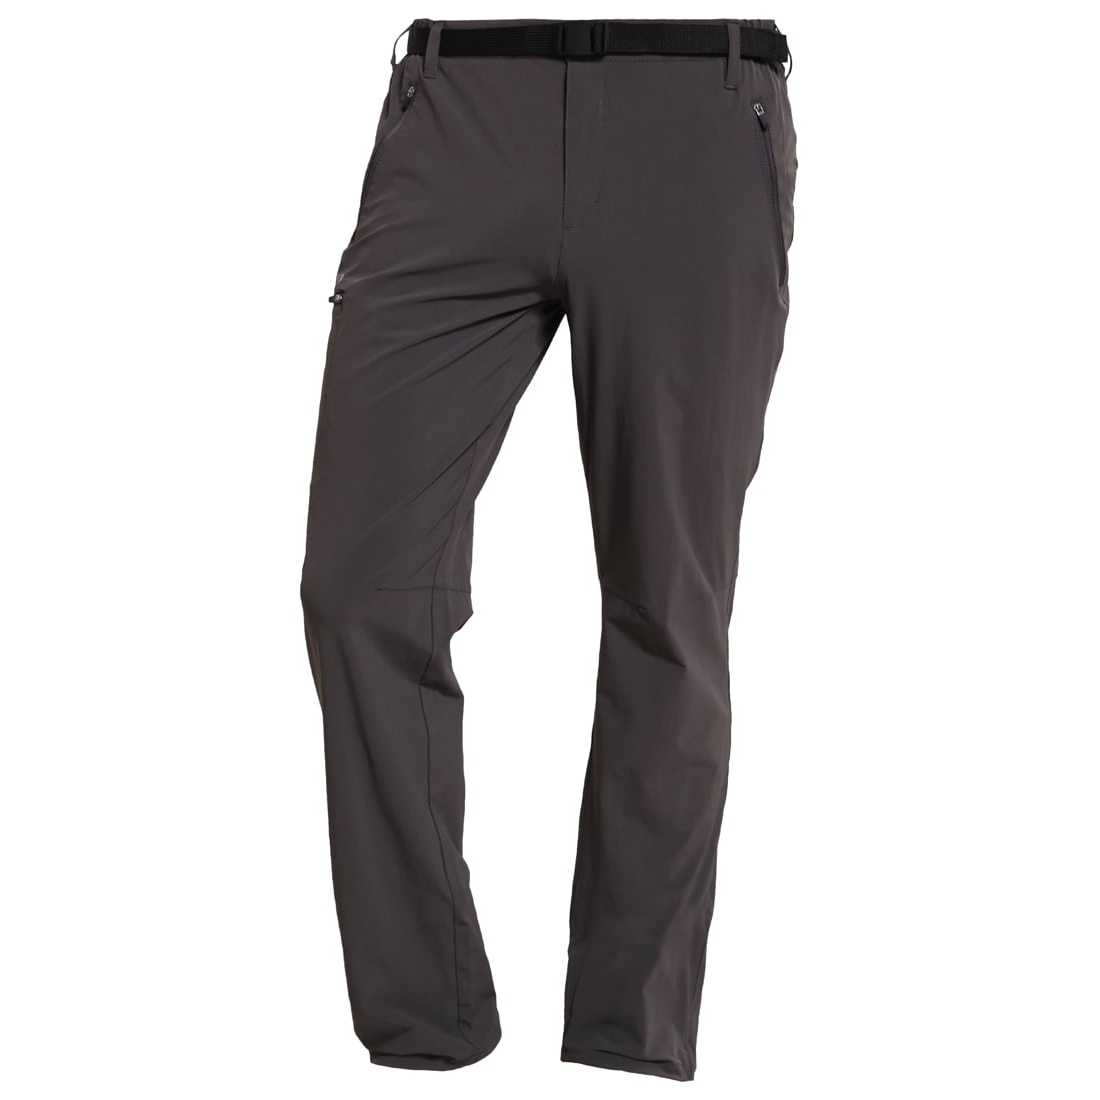 Regatta-Great-Outdoors-Mens-XERT-II-Quick-Drying-Water-Resistant-Trousers